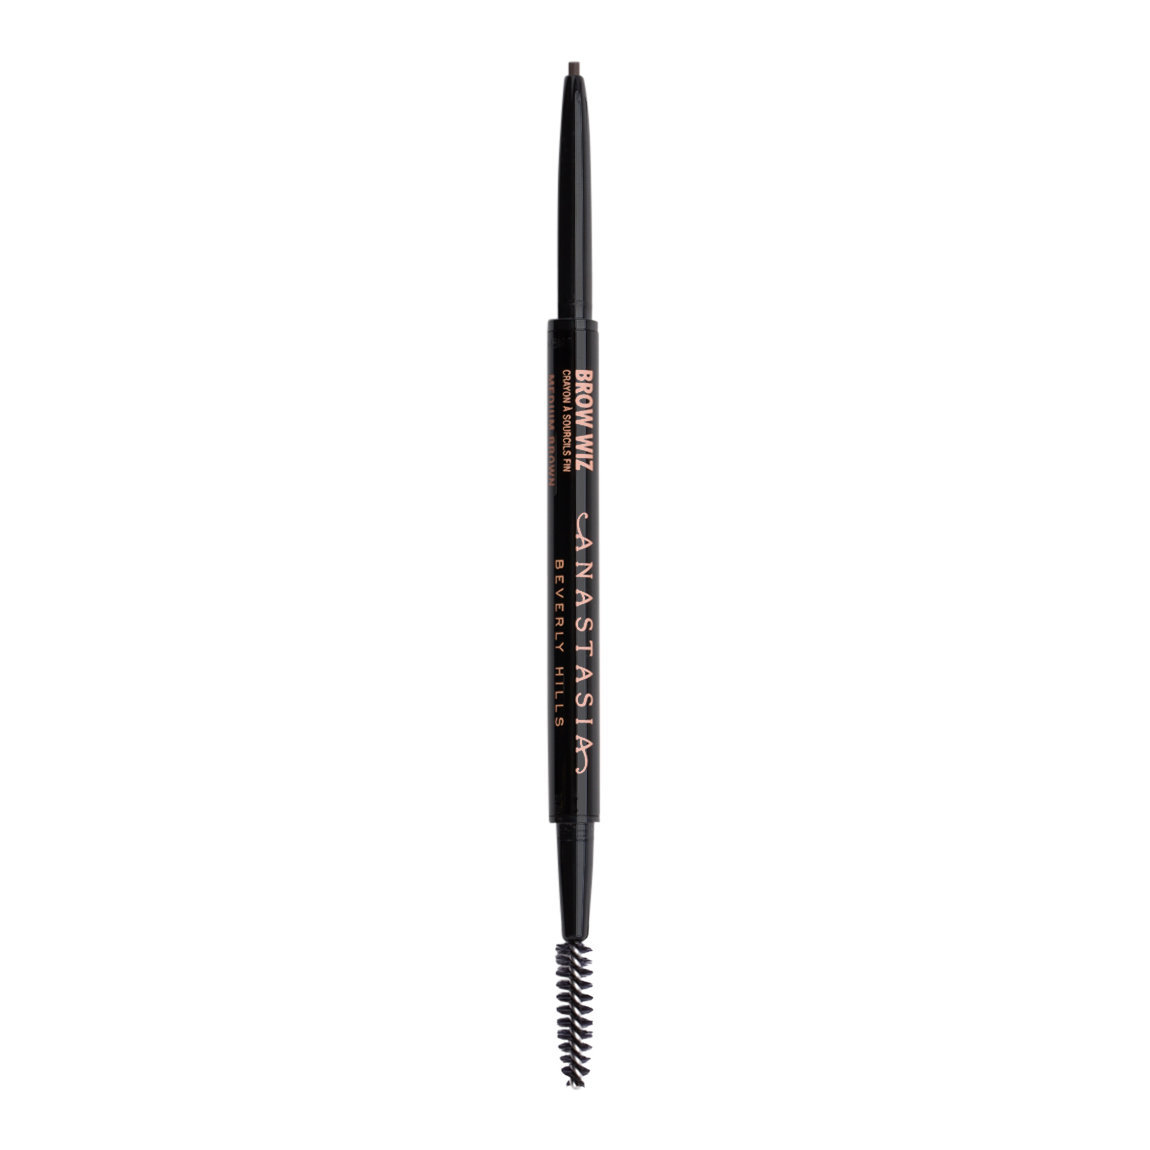 Anastasia Beverly Hills Brow Wiz Medium Brown alternative view 1.